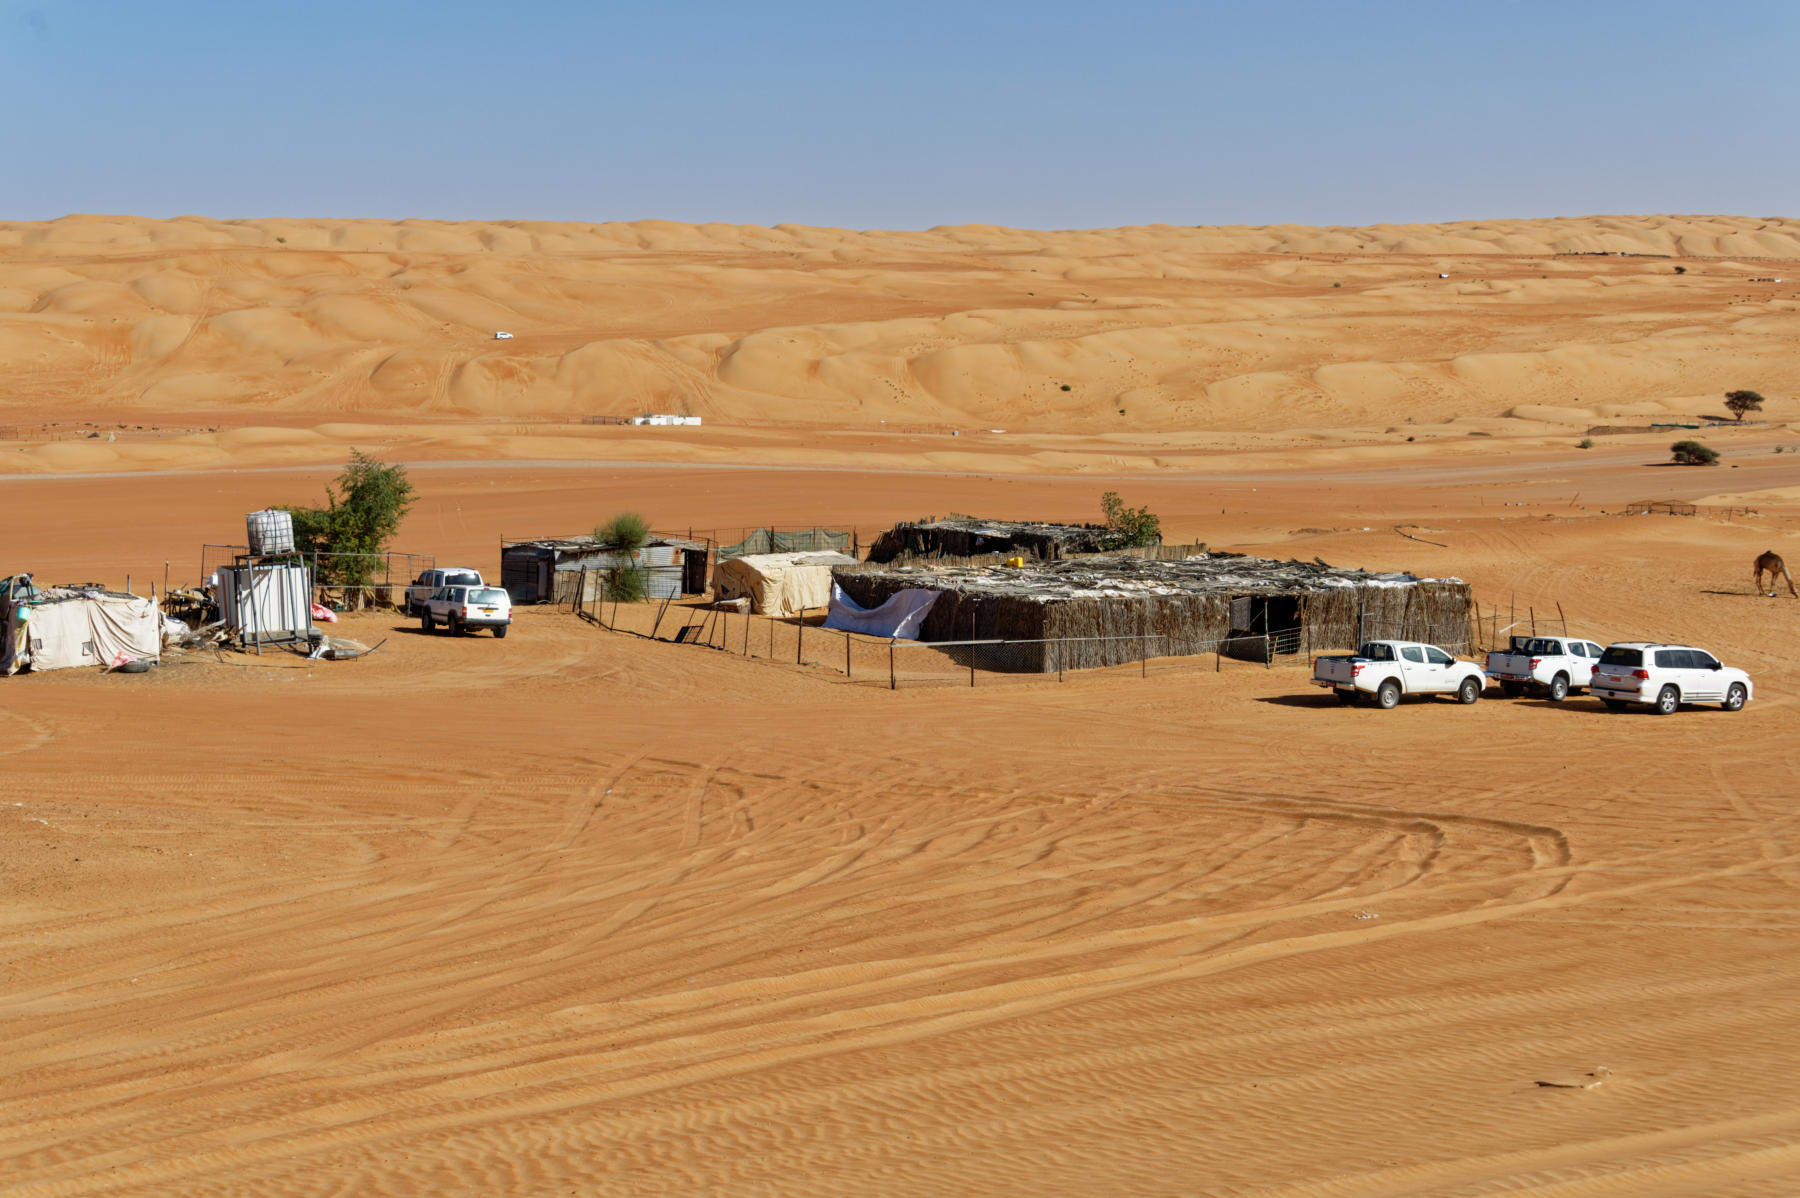 A Bedouin Family House, Oman